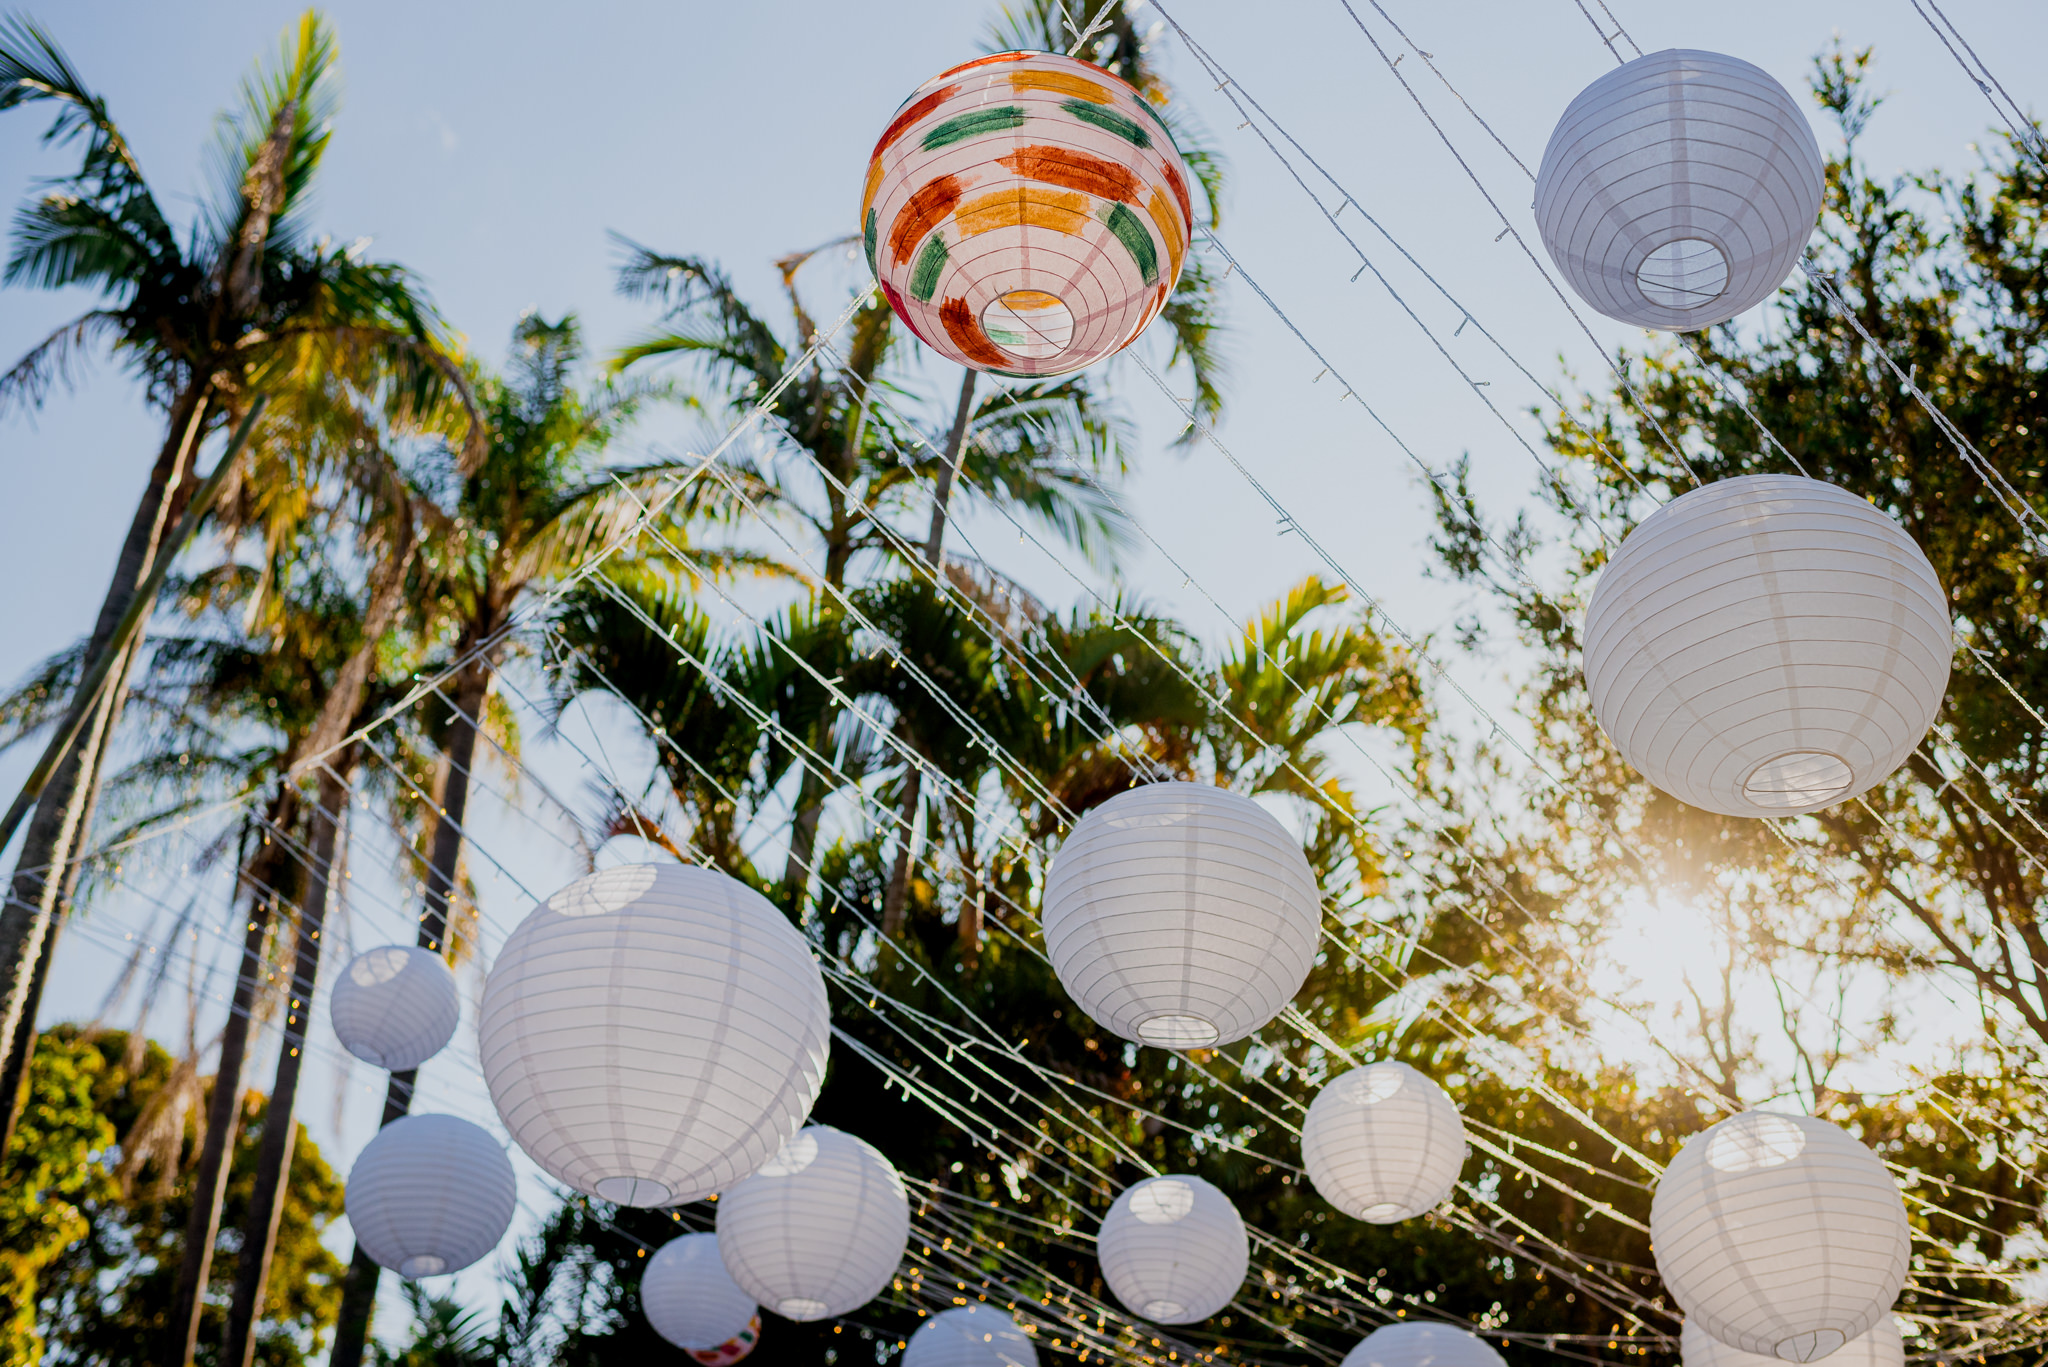 White lanterns strung up on lines of fairy lights, with one lantern painted colourfully and afternoon sun glowing behind them